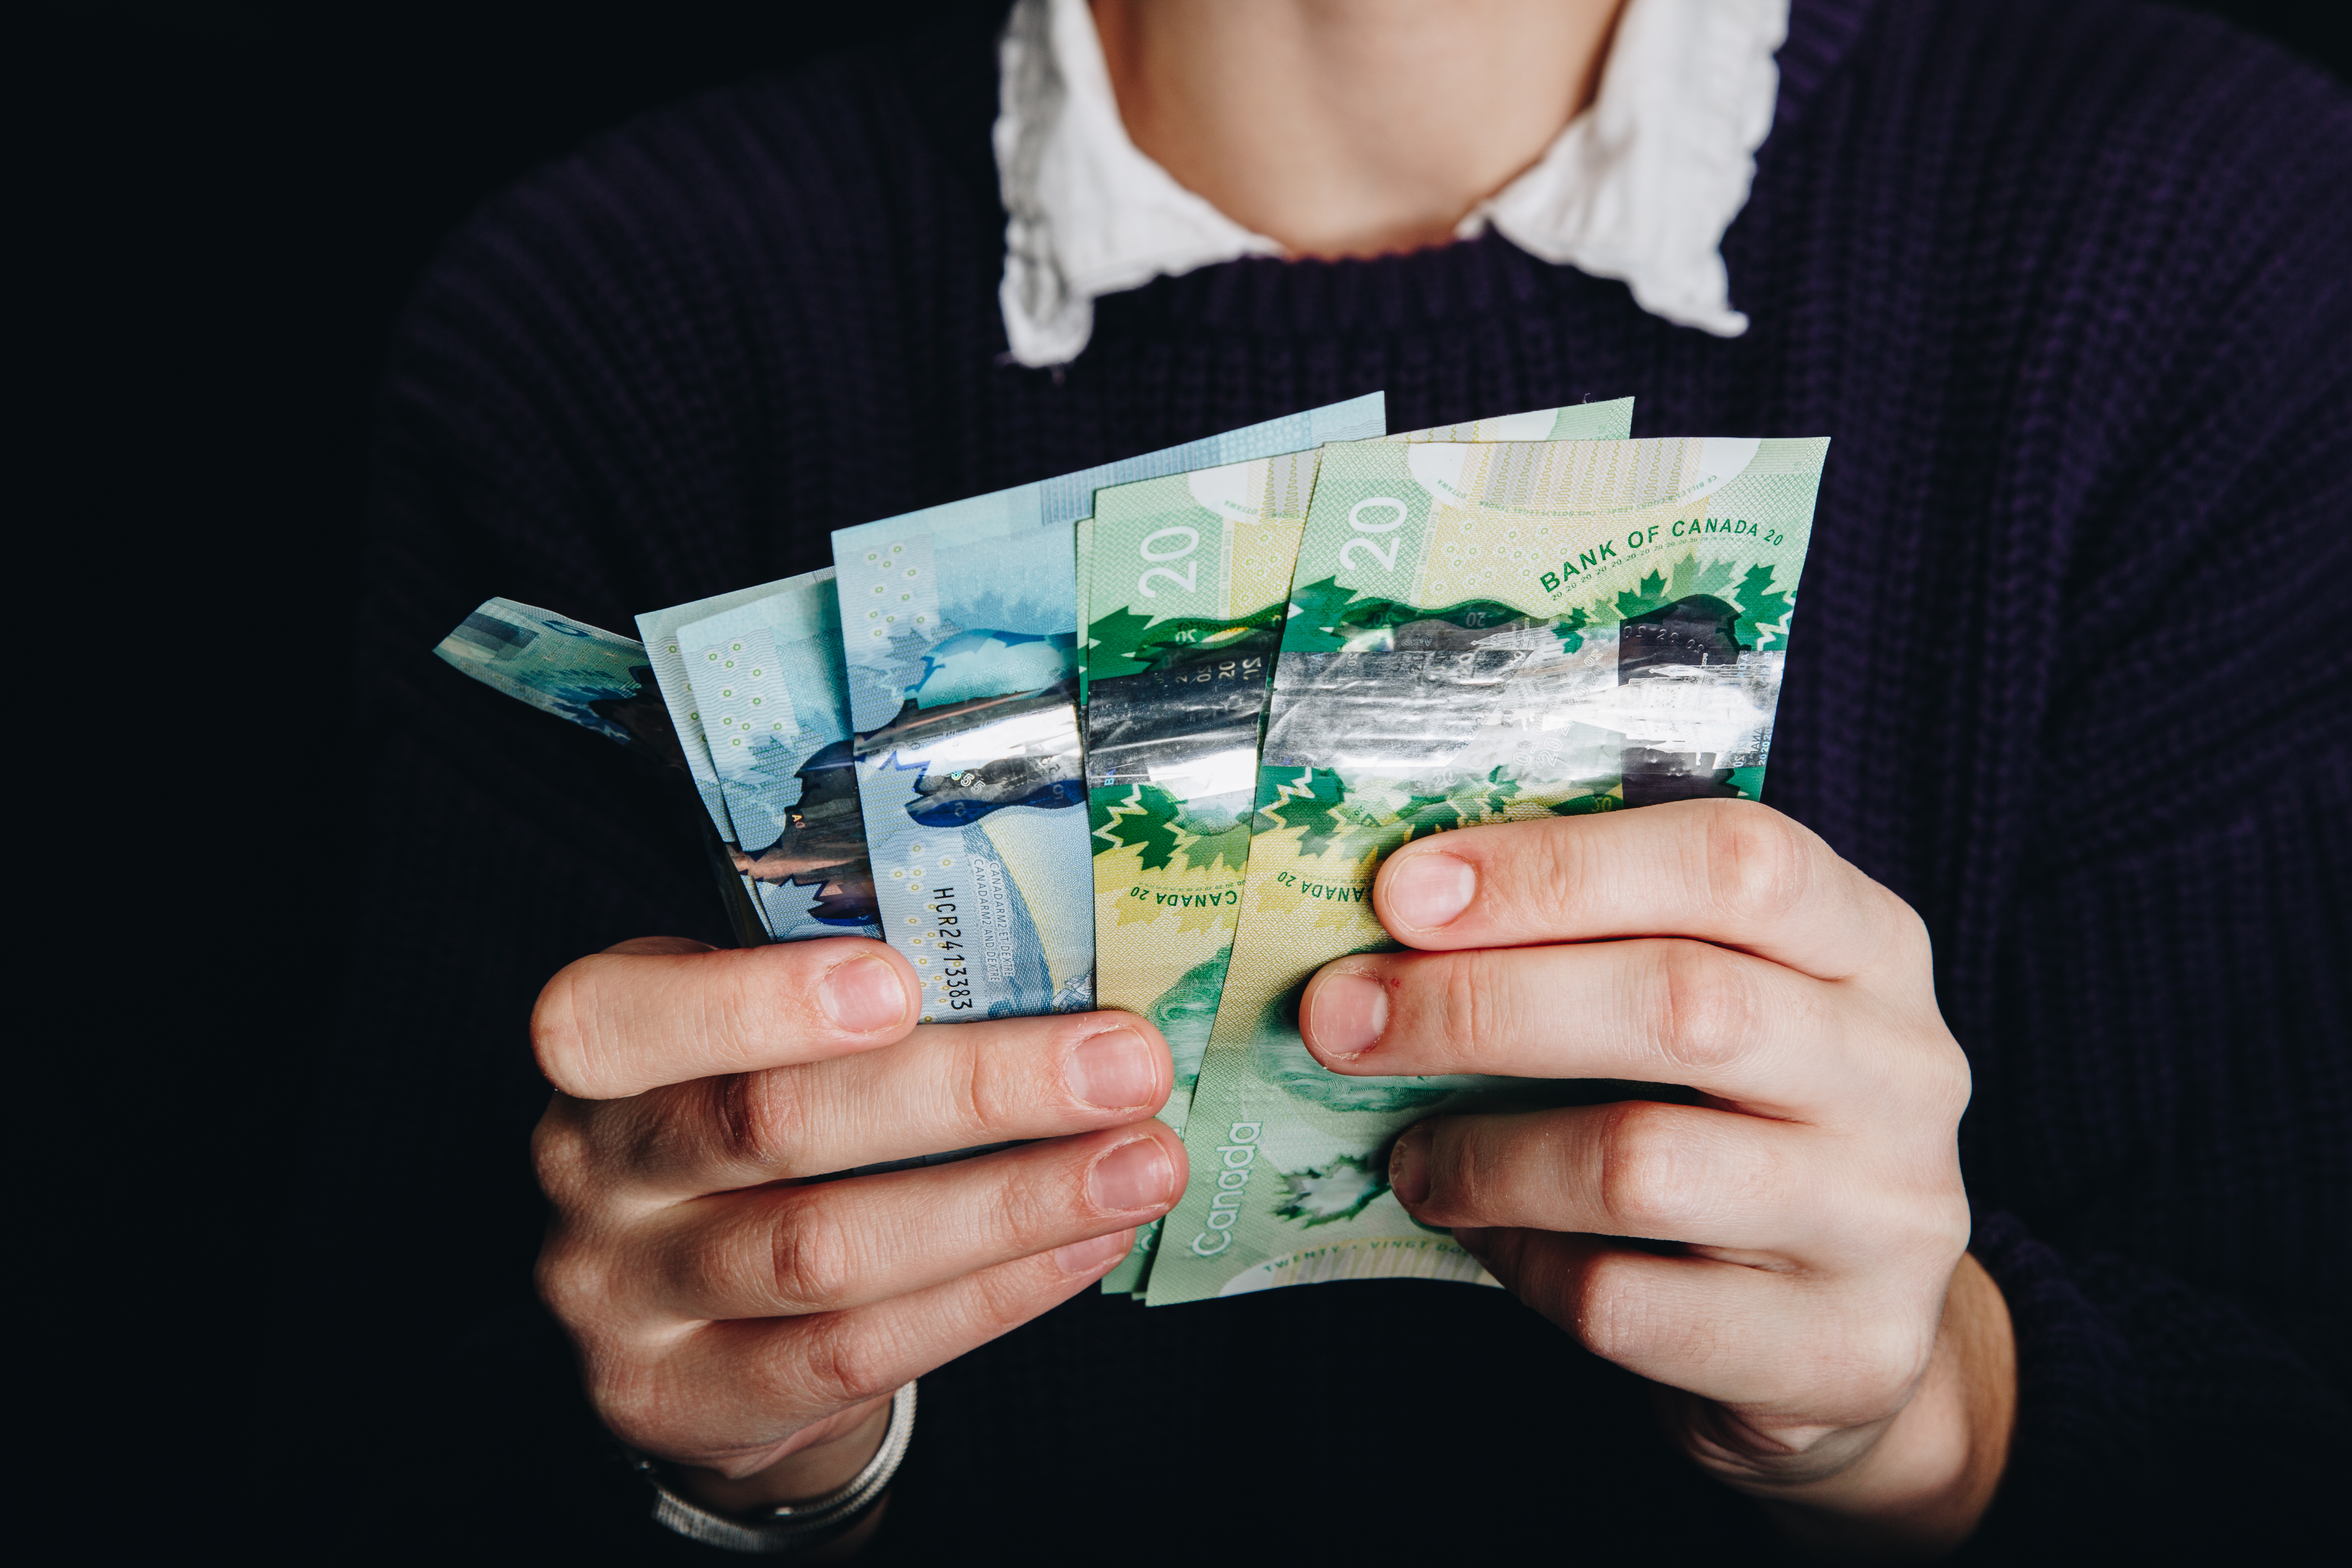 Freelancing as a full-time student How I earned extra cash, networked and developed skills I couldn't learn in the classroom